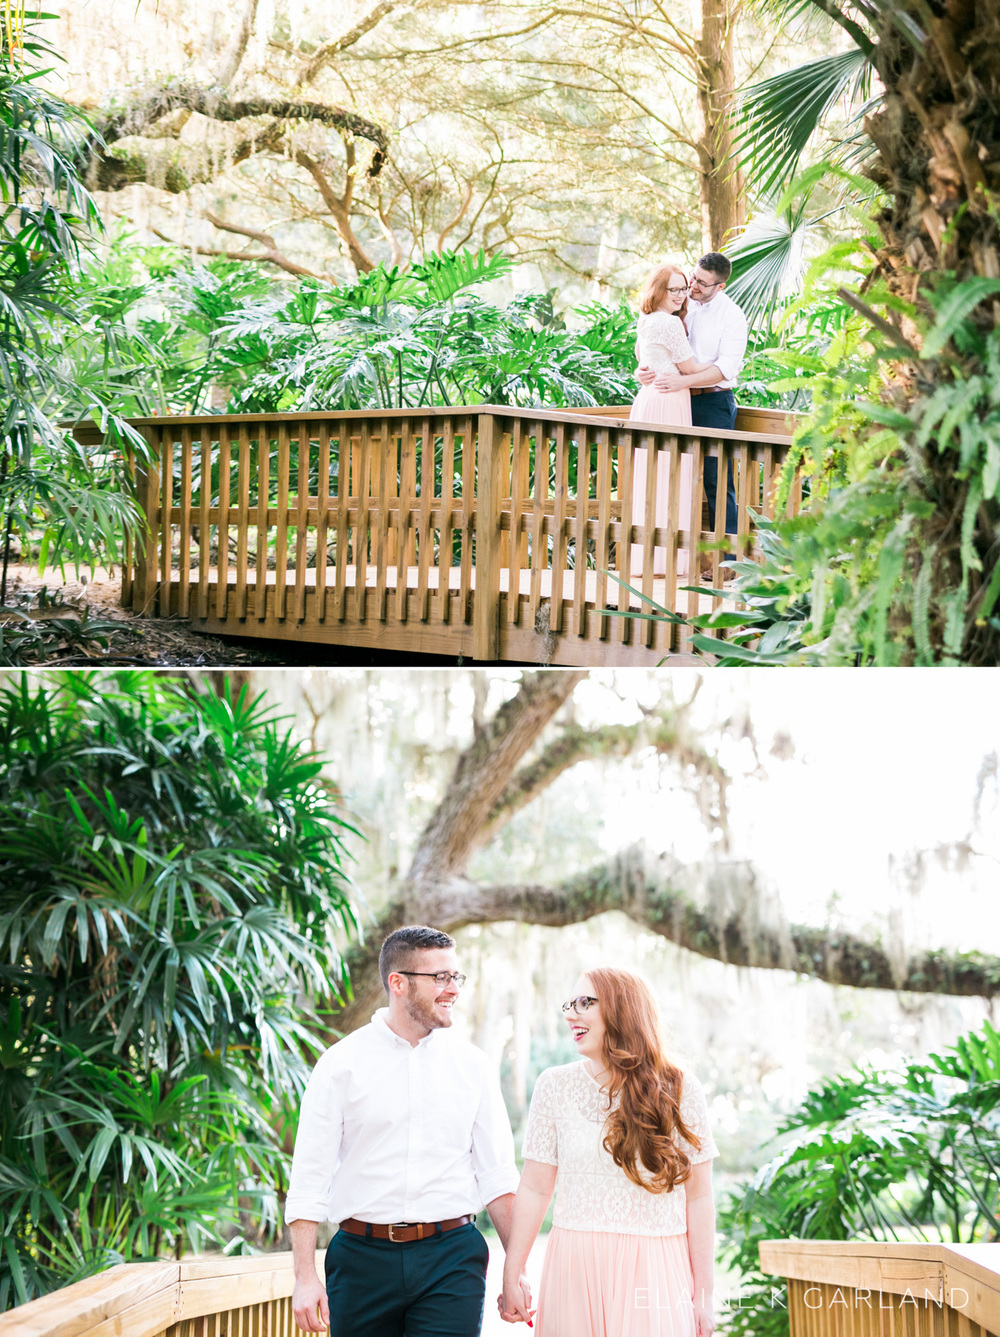 washington-oaks-garden-state-park-engagement-session-2.jpg